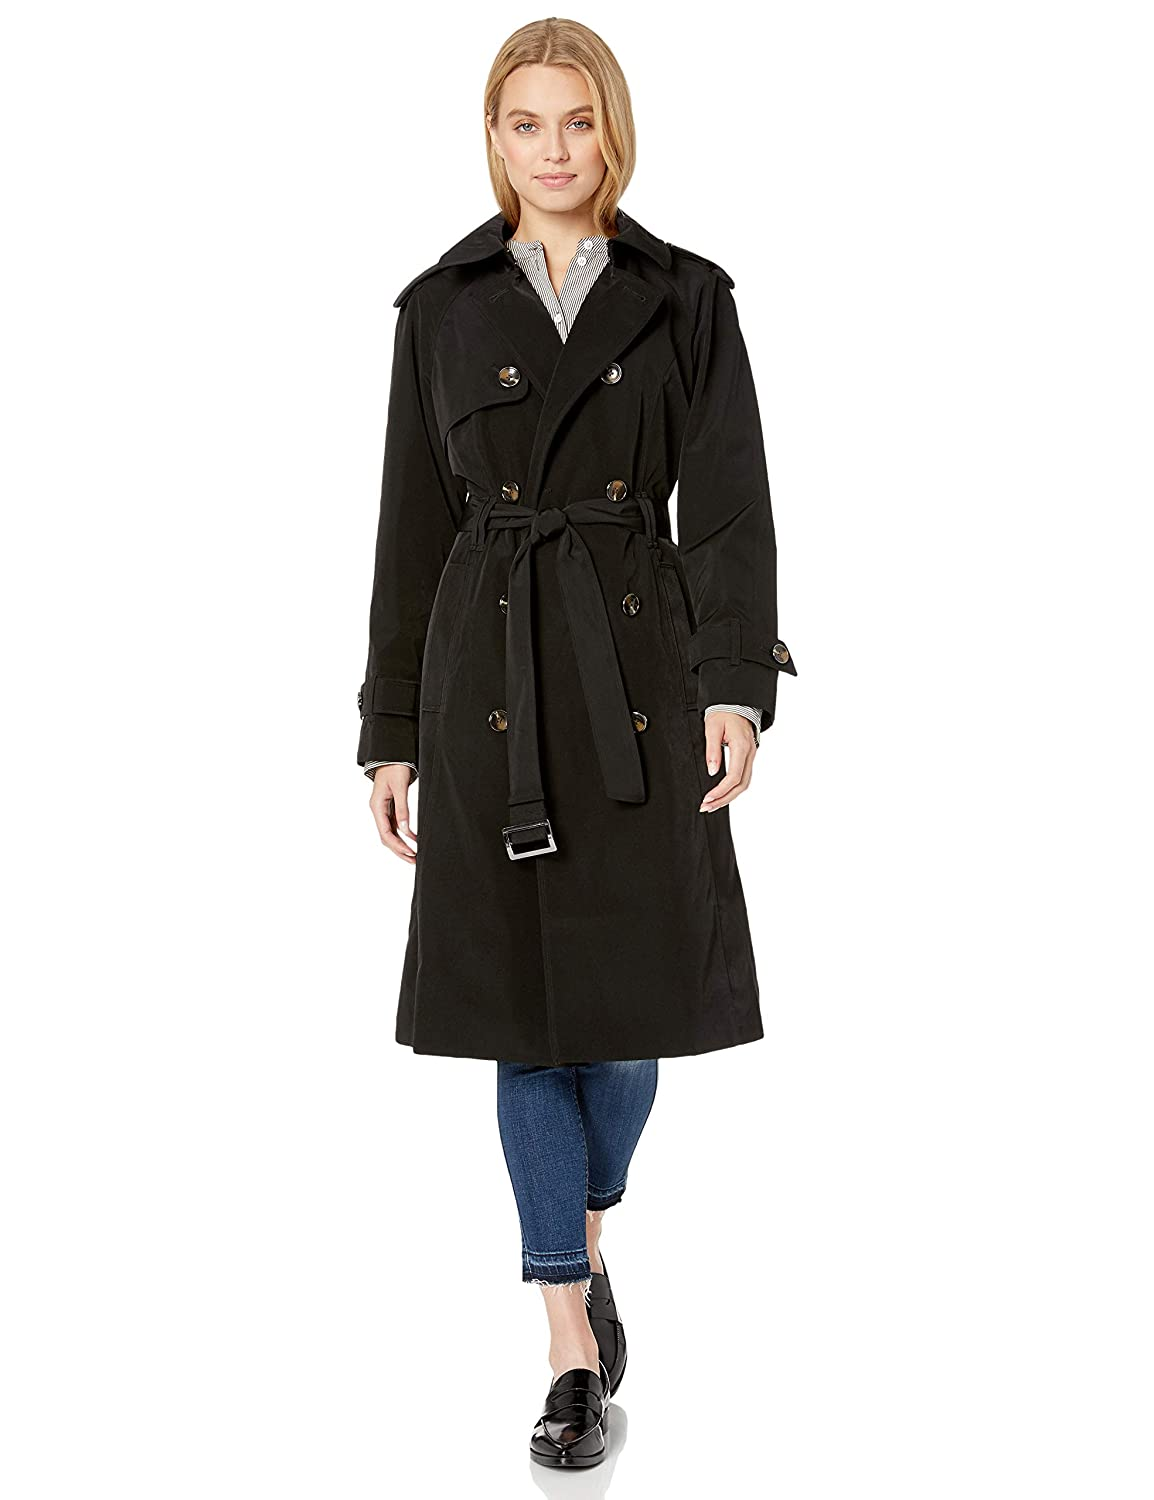 1940s Coats & Jackets Fashion History London Fog Womens Midi-Length Trench Coat $101.15 AT vintagedancer.com